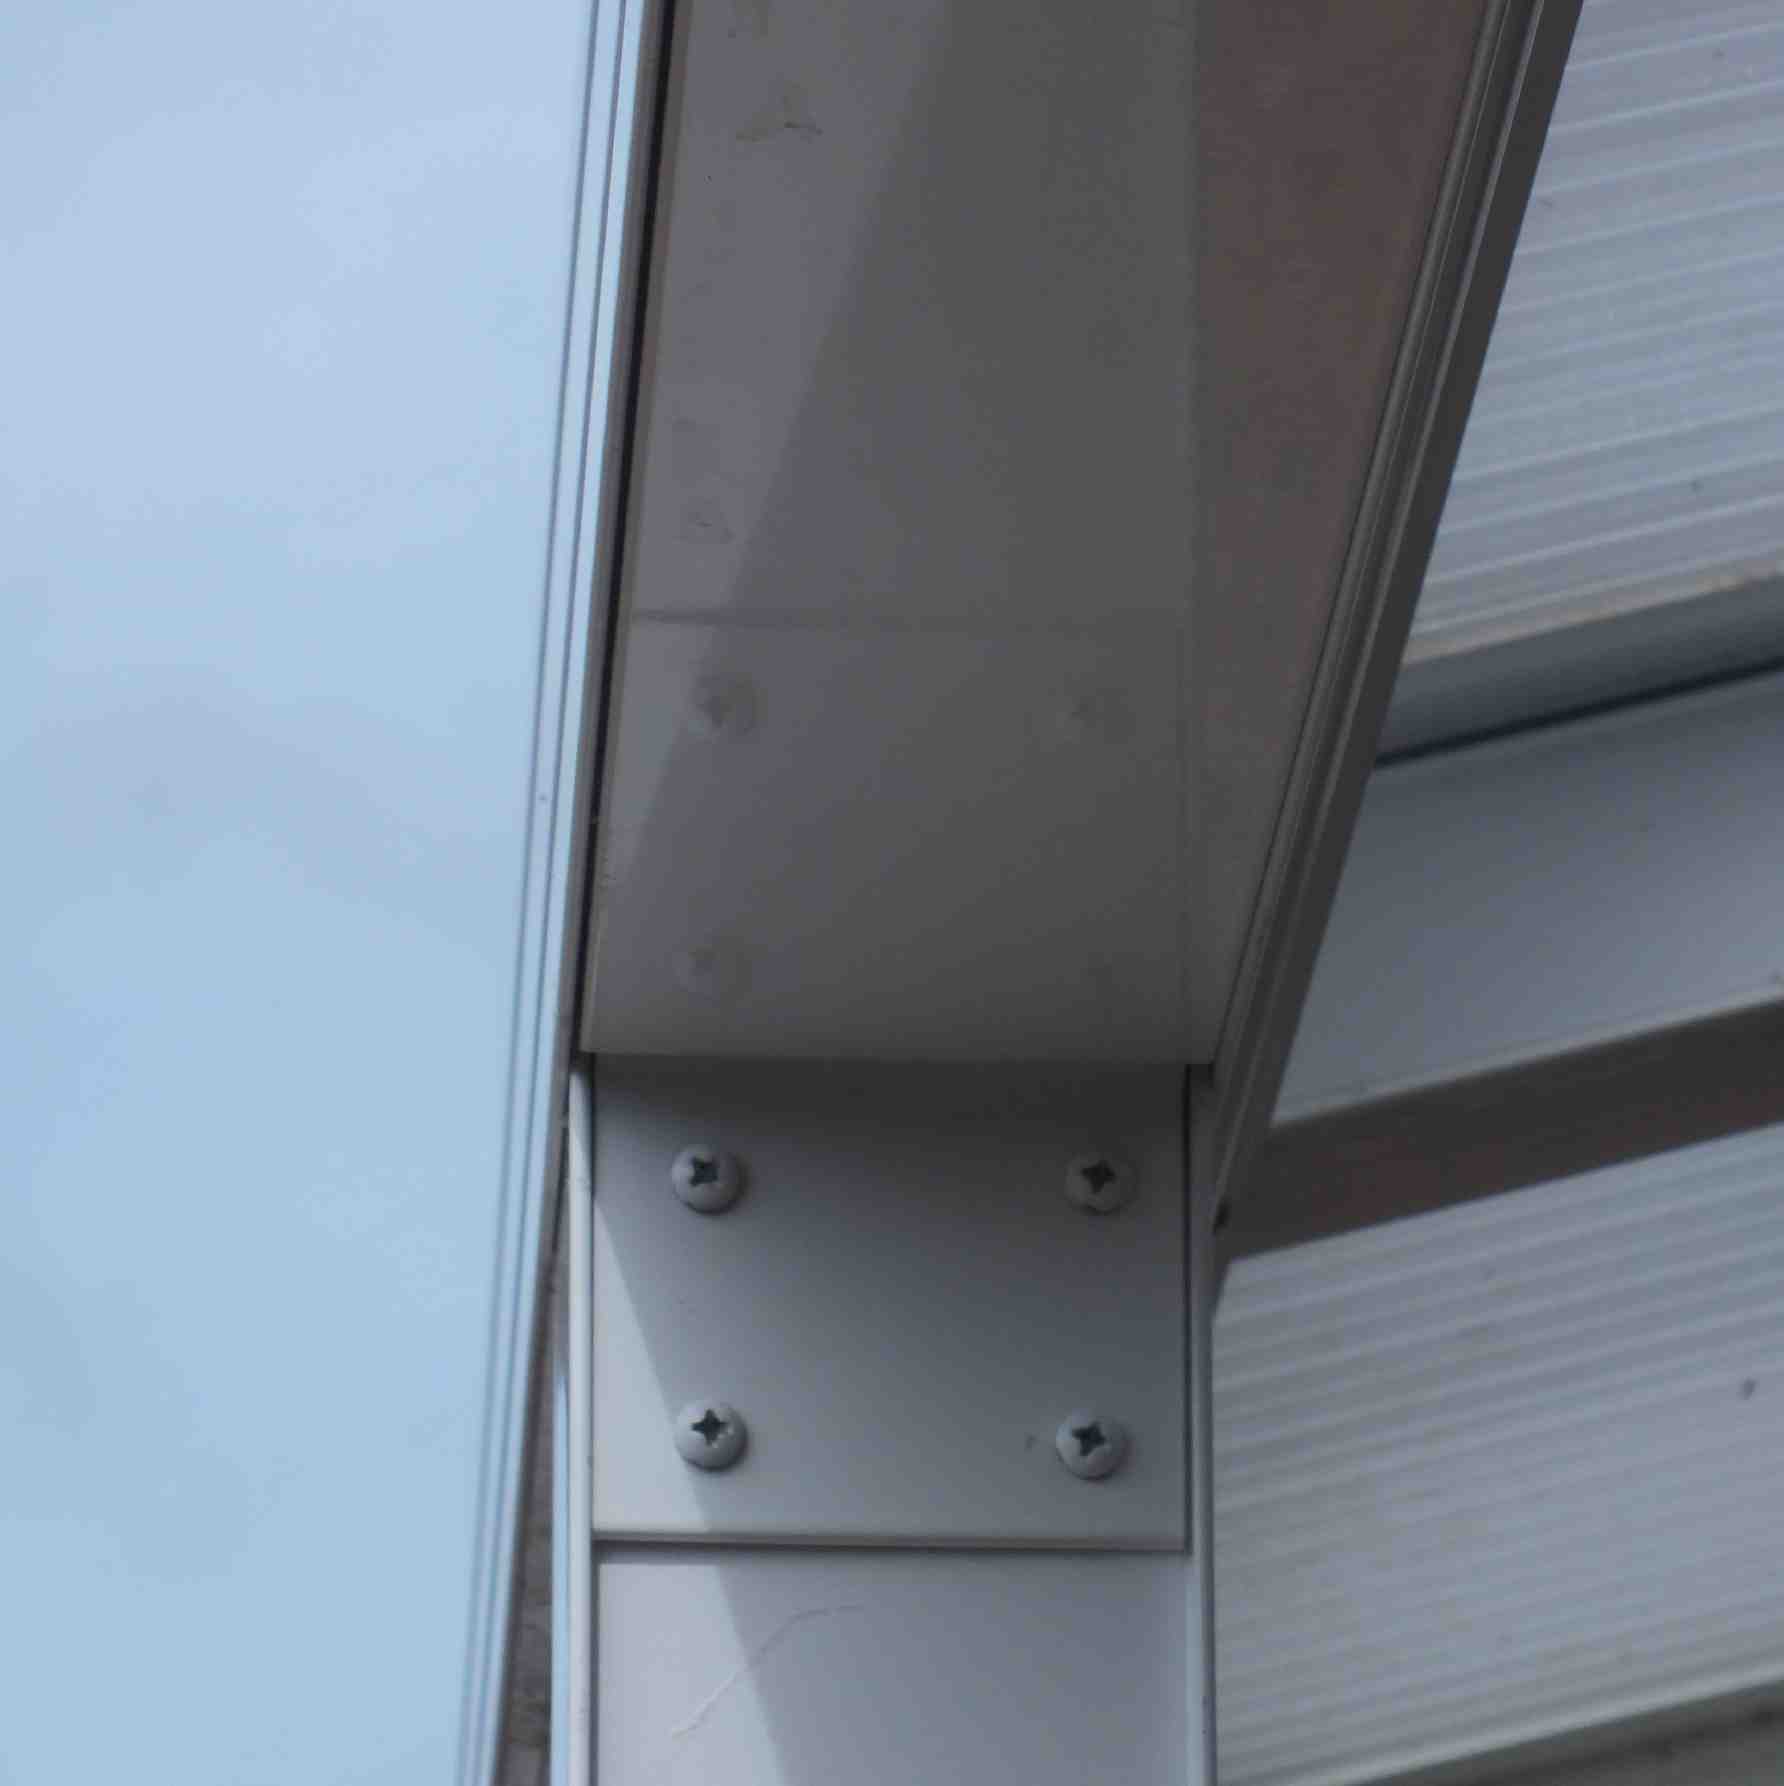 Affordable Omega Verandah with 16mm Polycarbonate Glazing - 2.1m (W) x 4.0m (P), (2) Supporting Posts